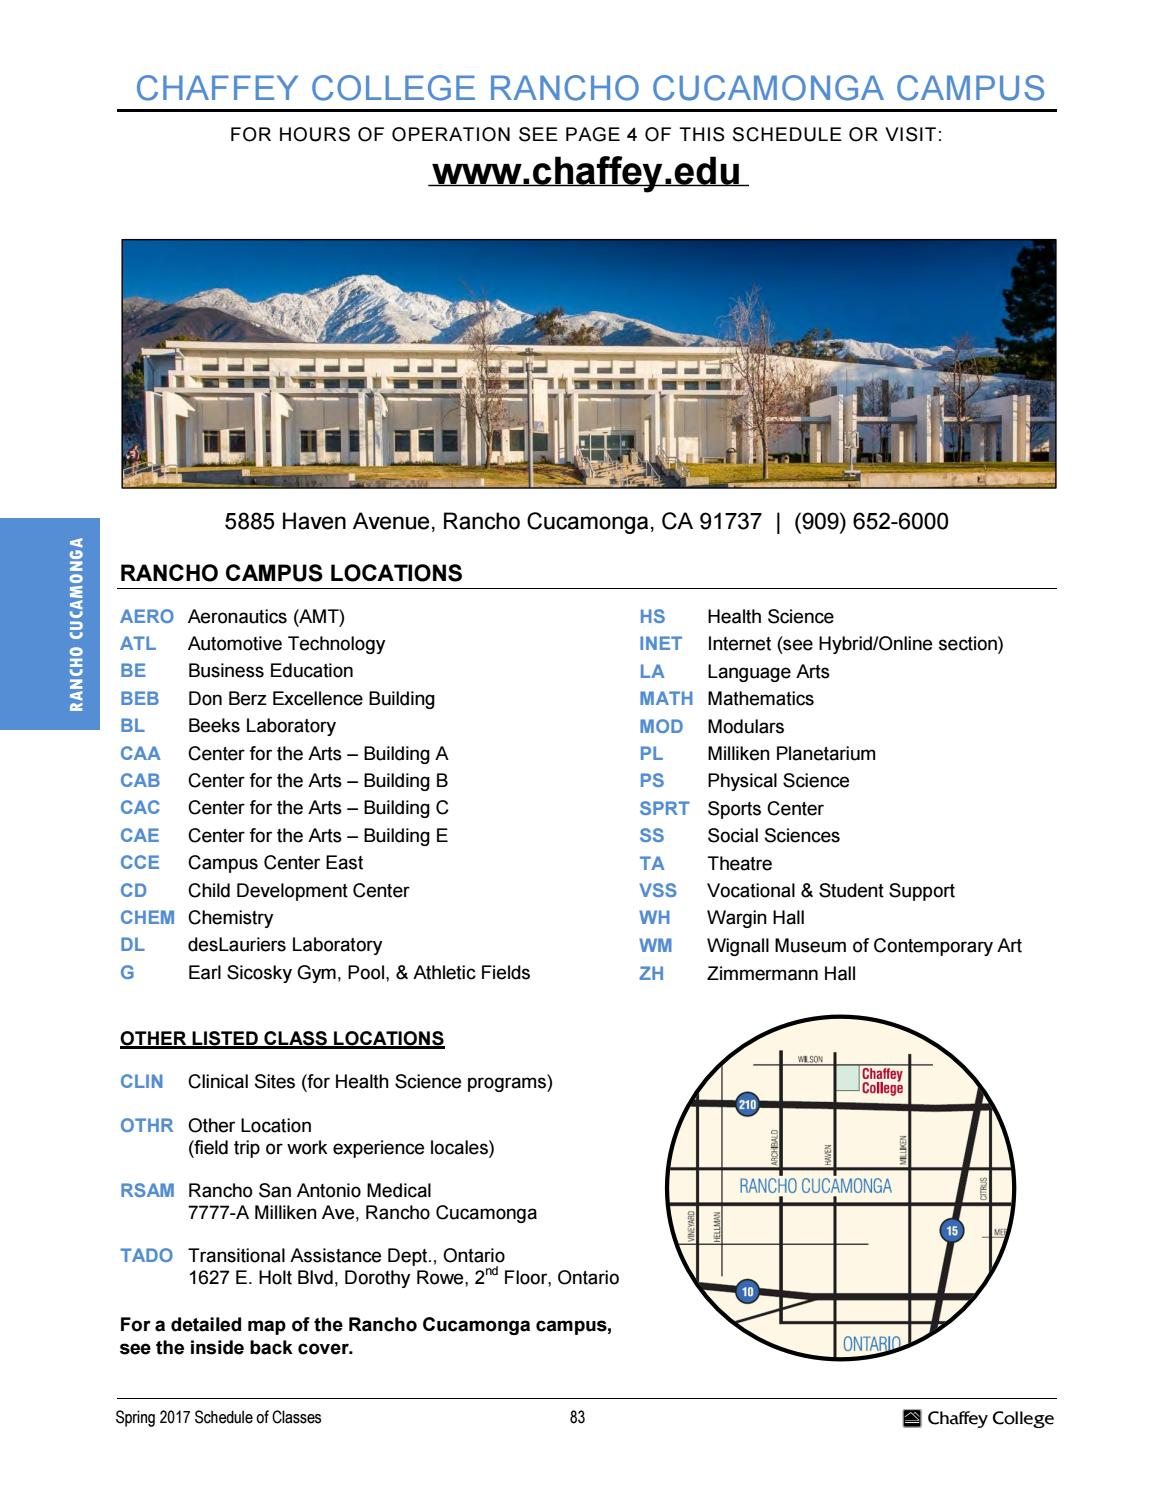 Spring 2017 Complete Schedule Of Classes By Chaffey College Issuu